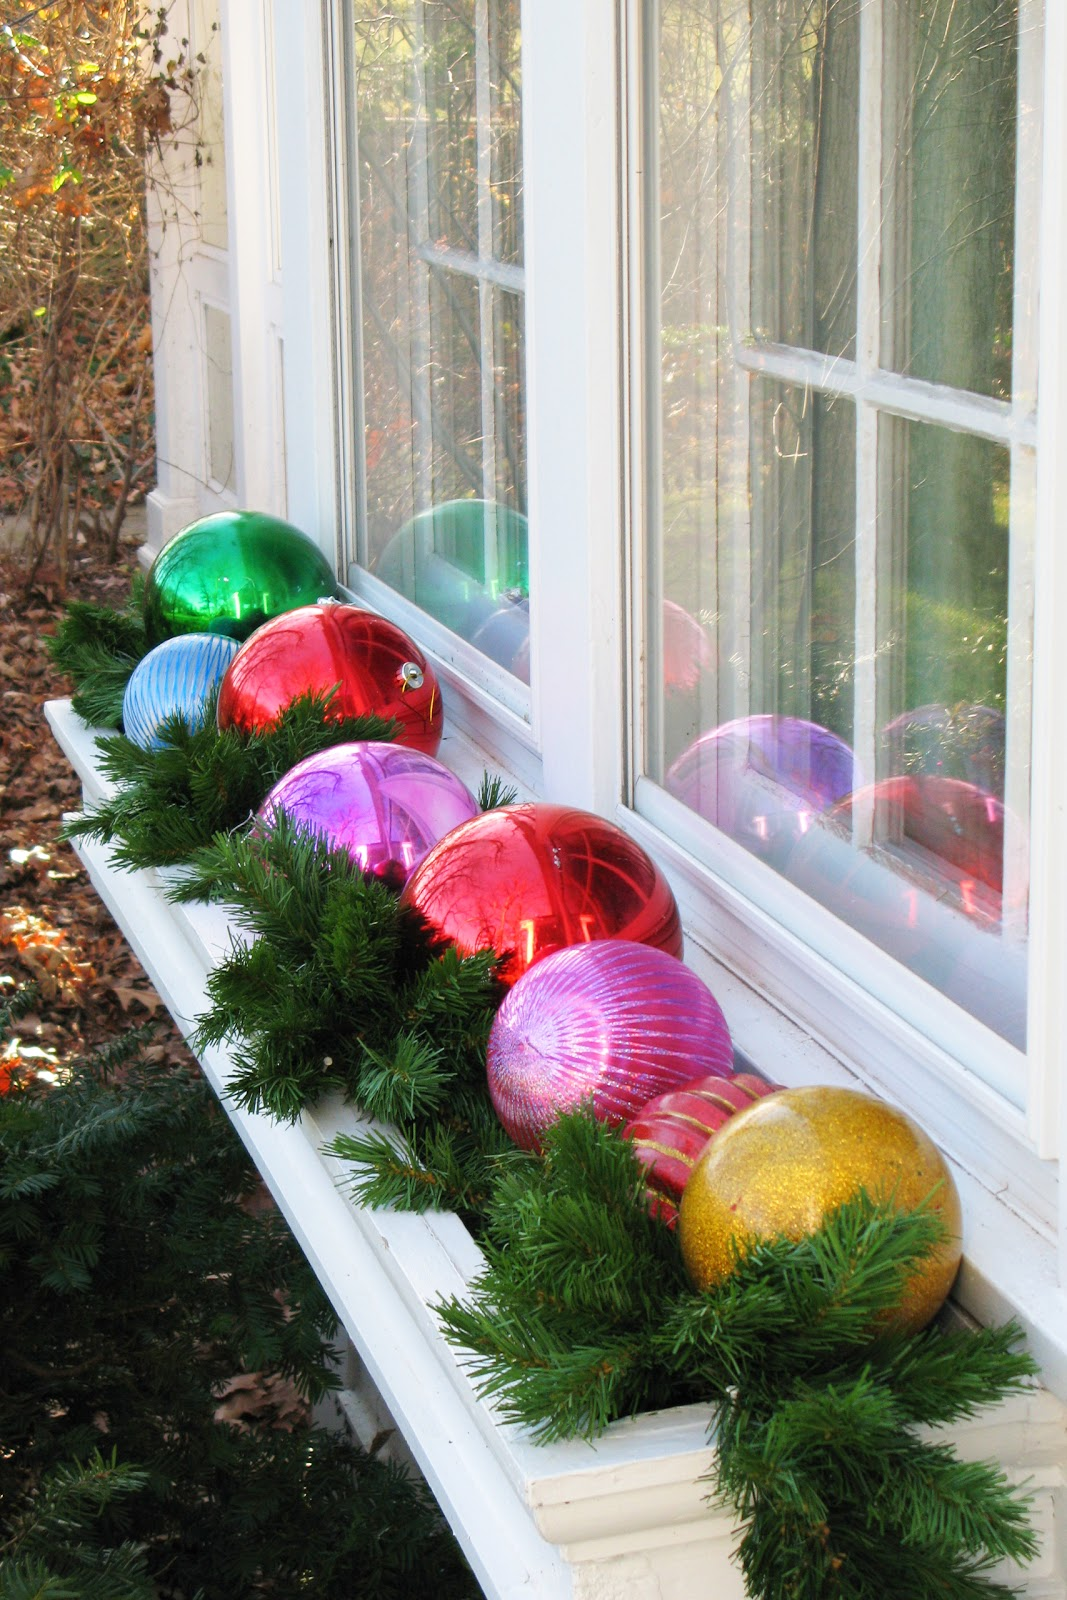 Giant outdoor lighted ornaments - Window Box Full Of Ornaments